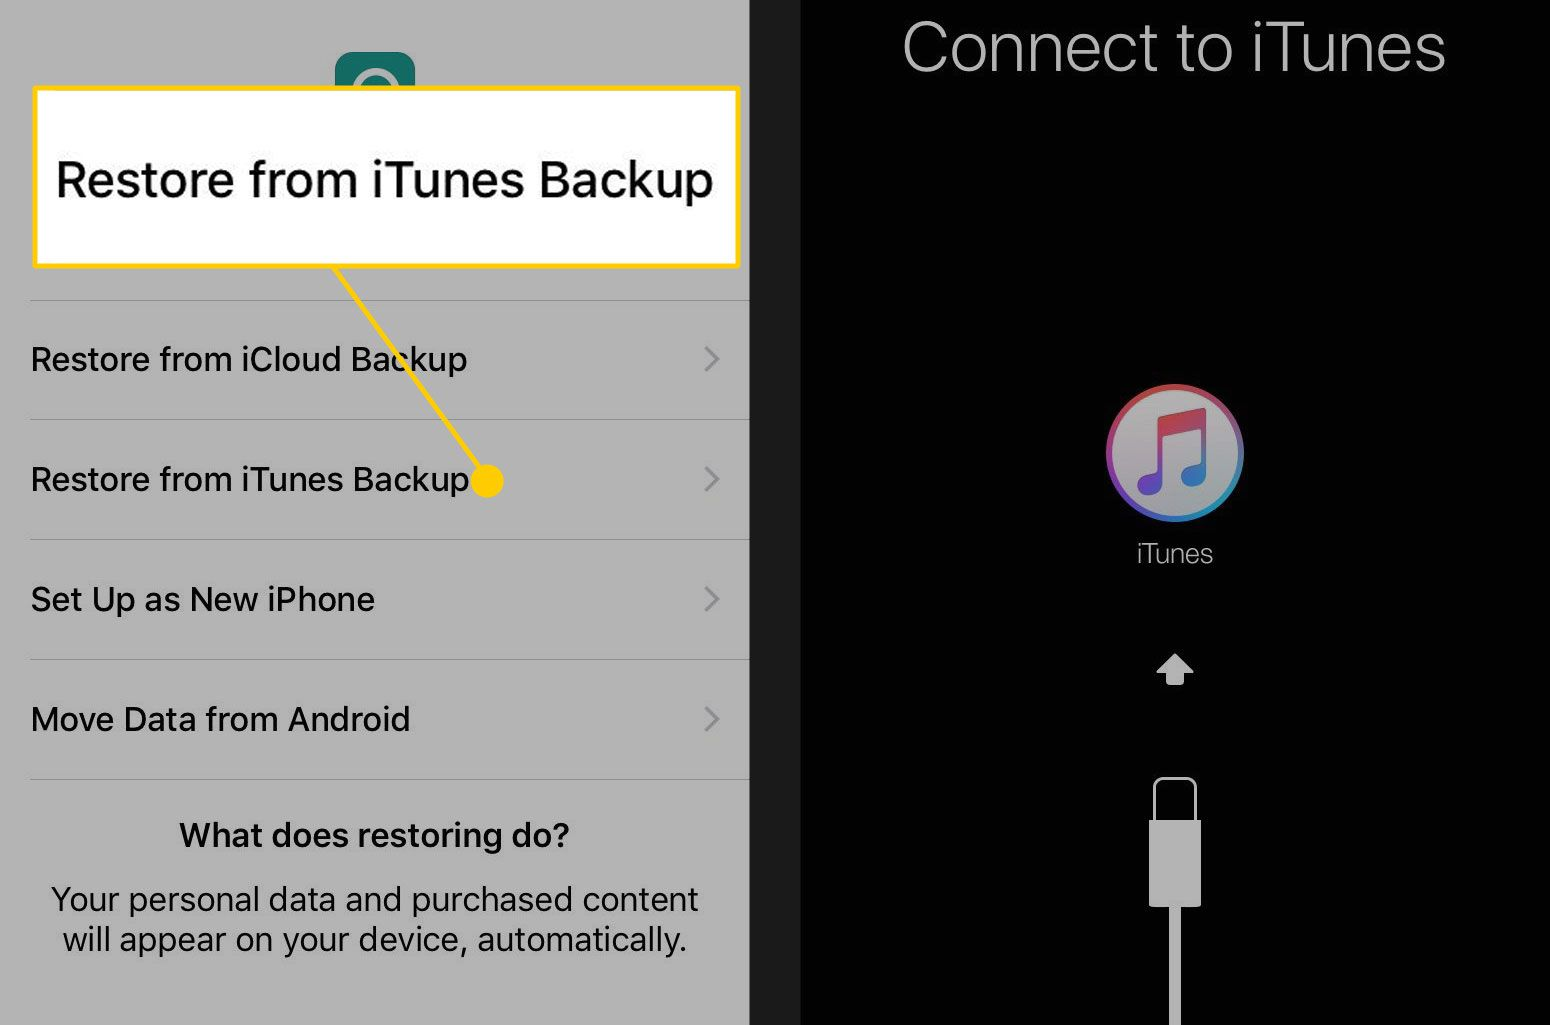 iPhone setup with the Restore from iTunes Backup option highlighted